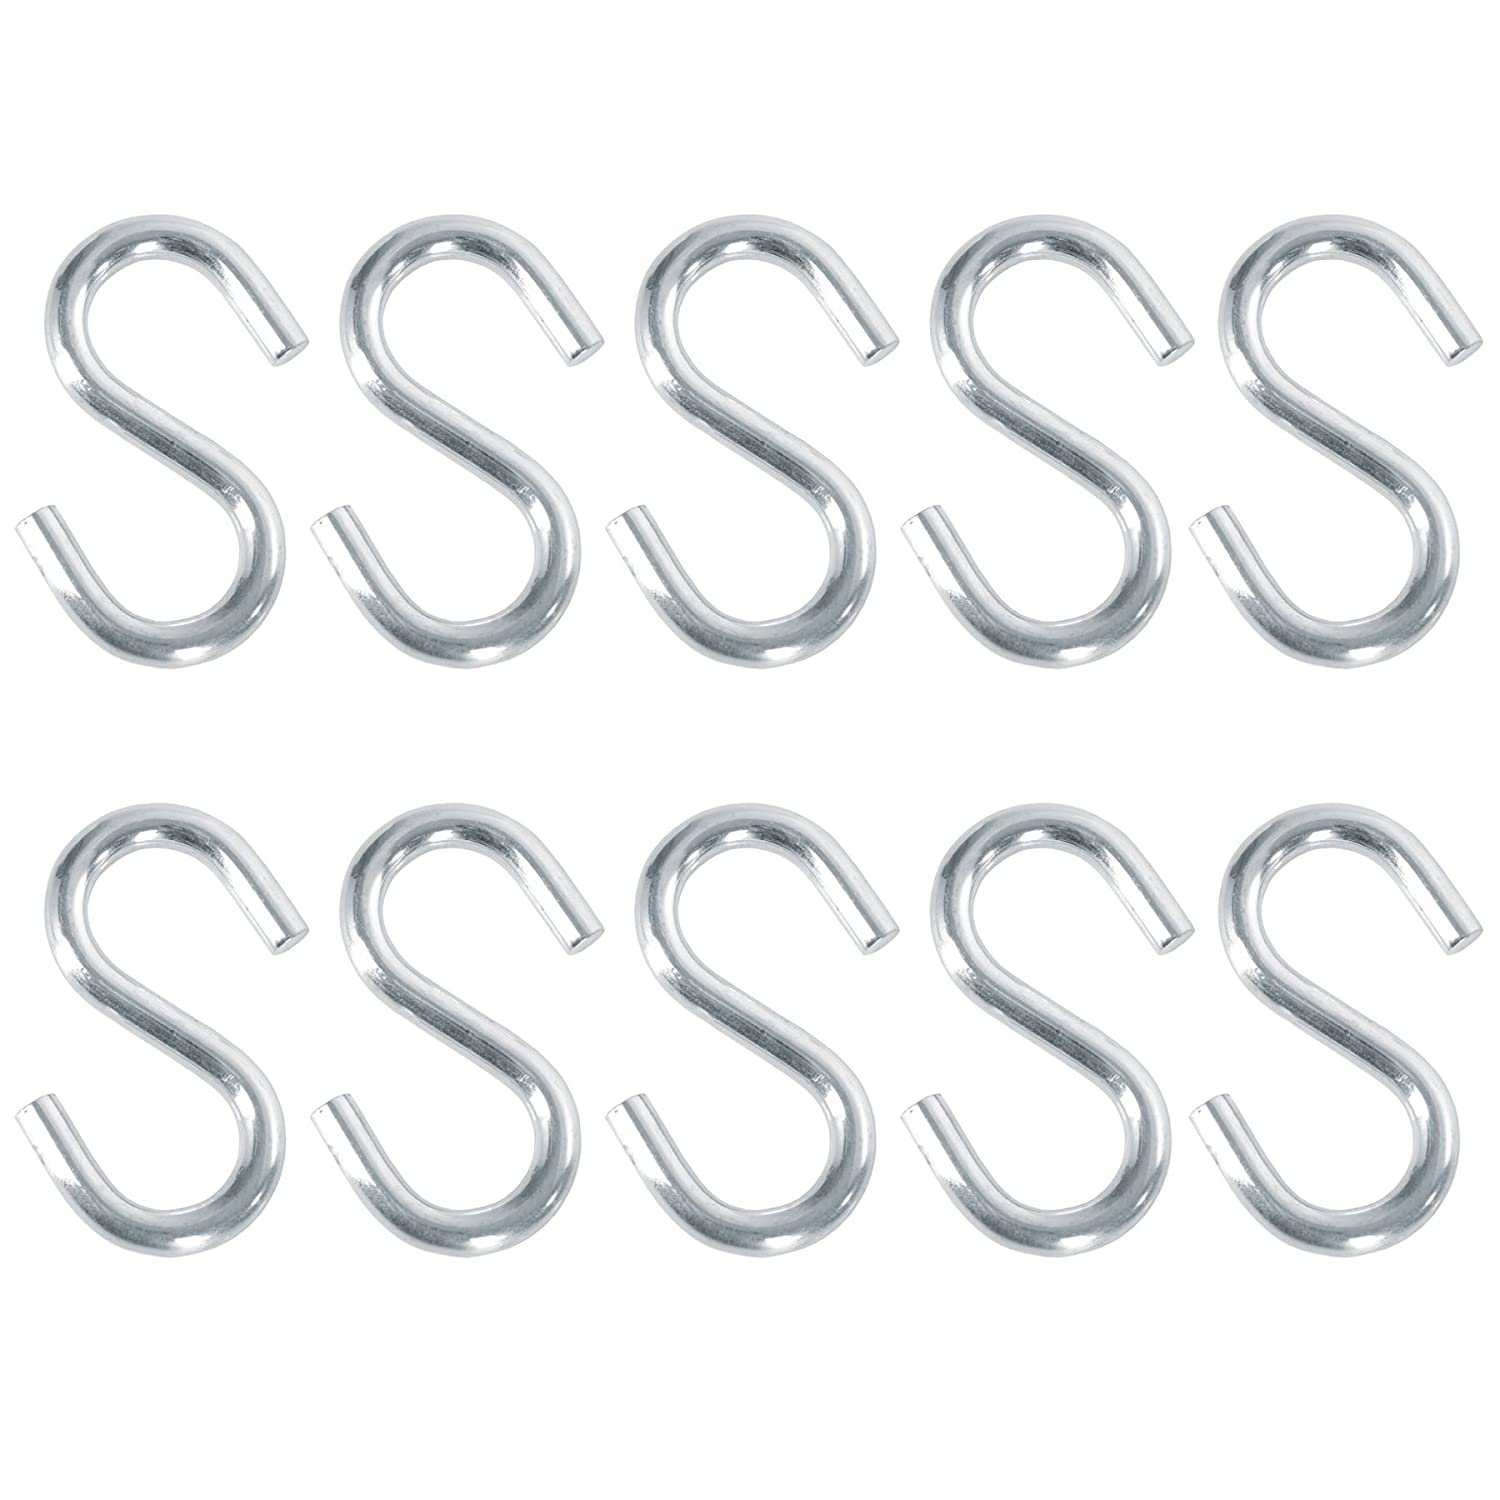 10x Durable S-Hooks For Storage & Hanging | 3'/75mm White Hinge